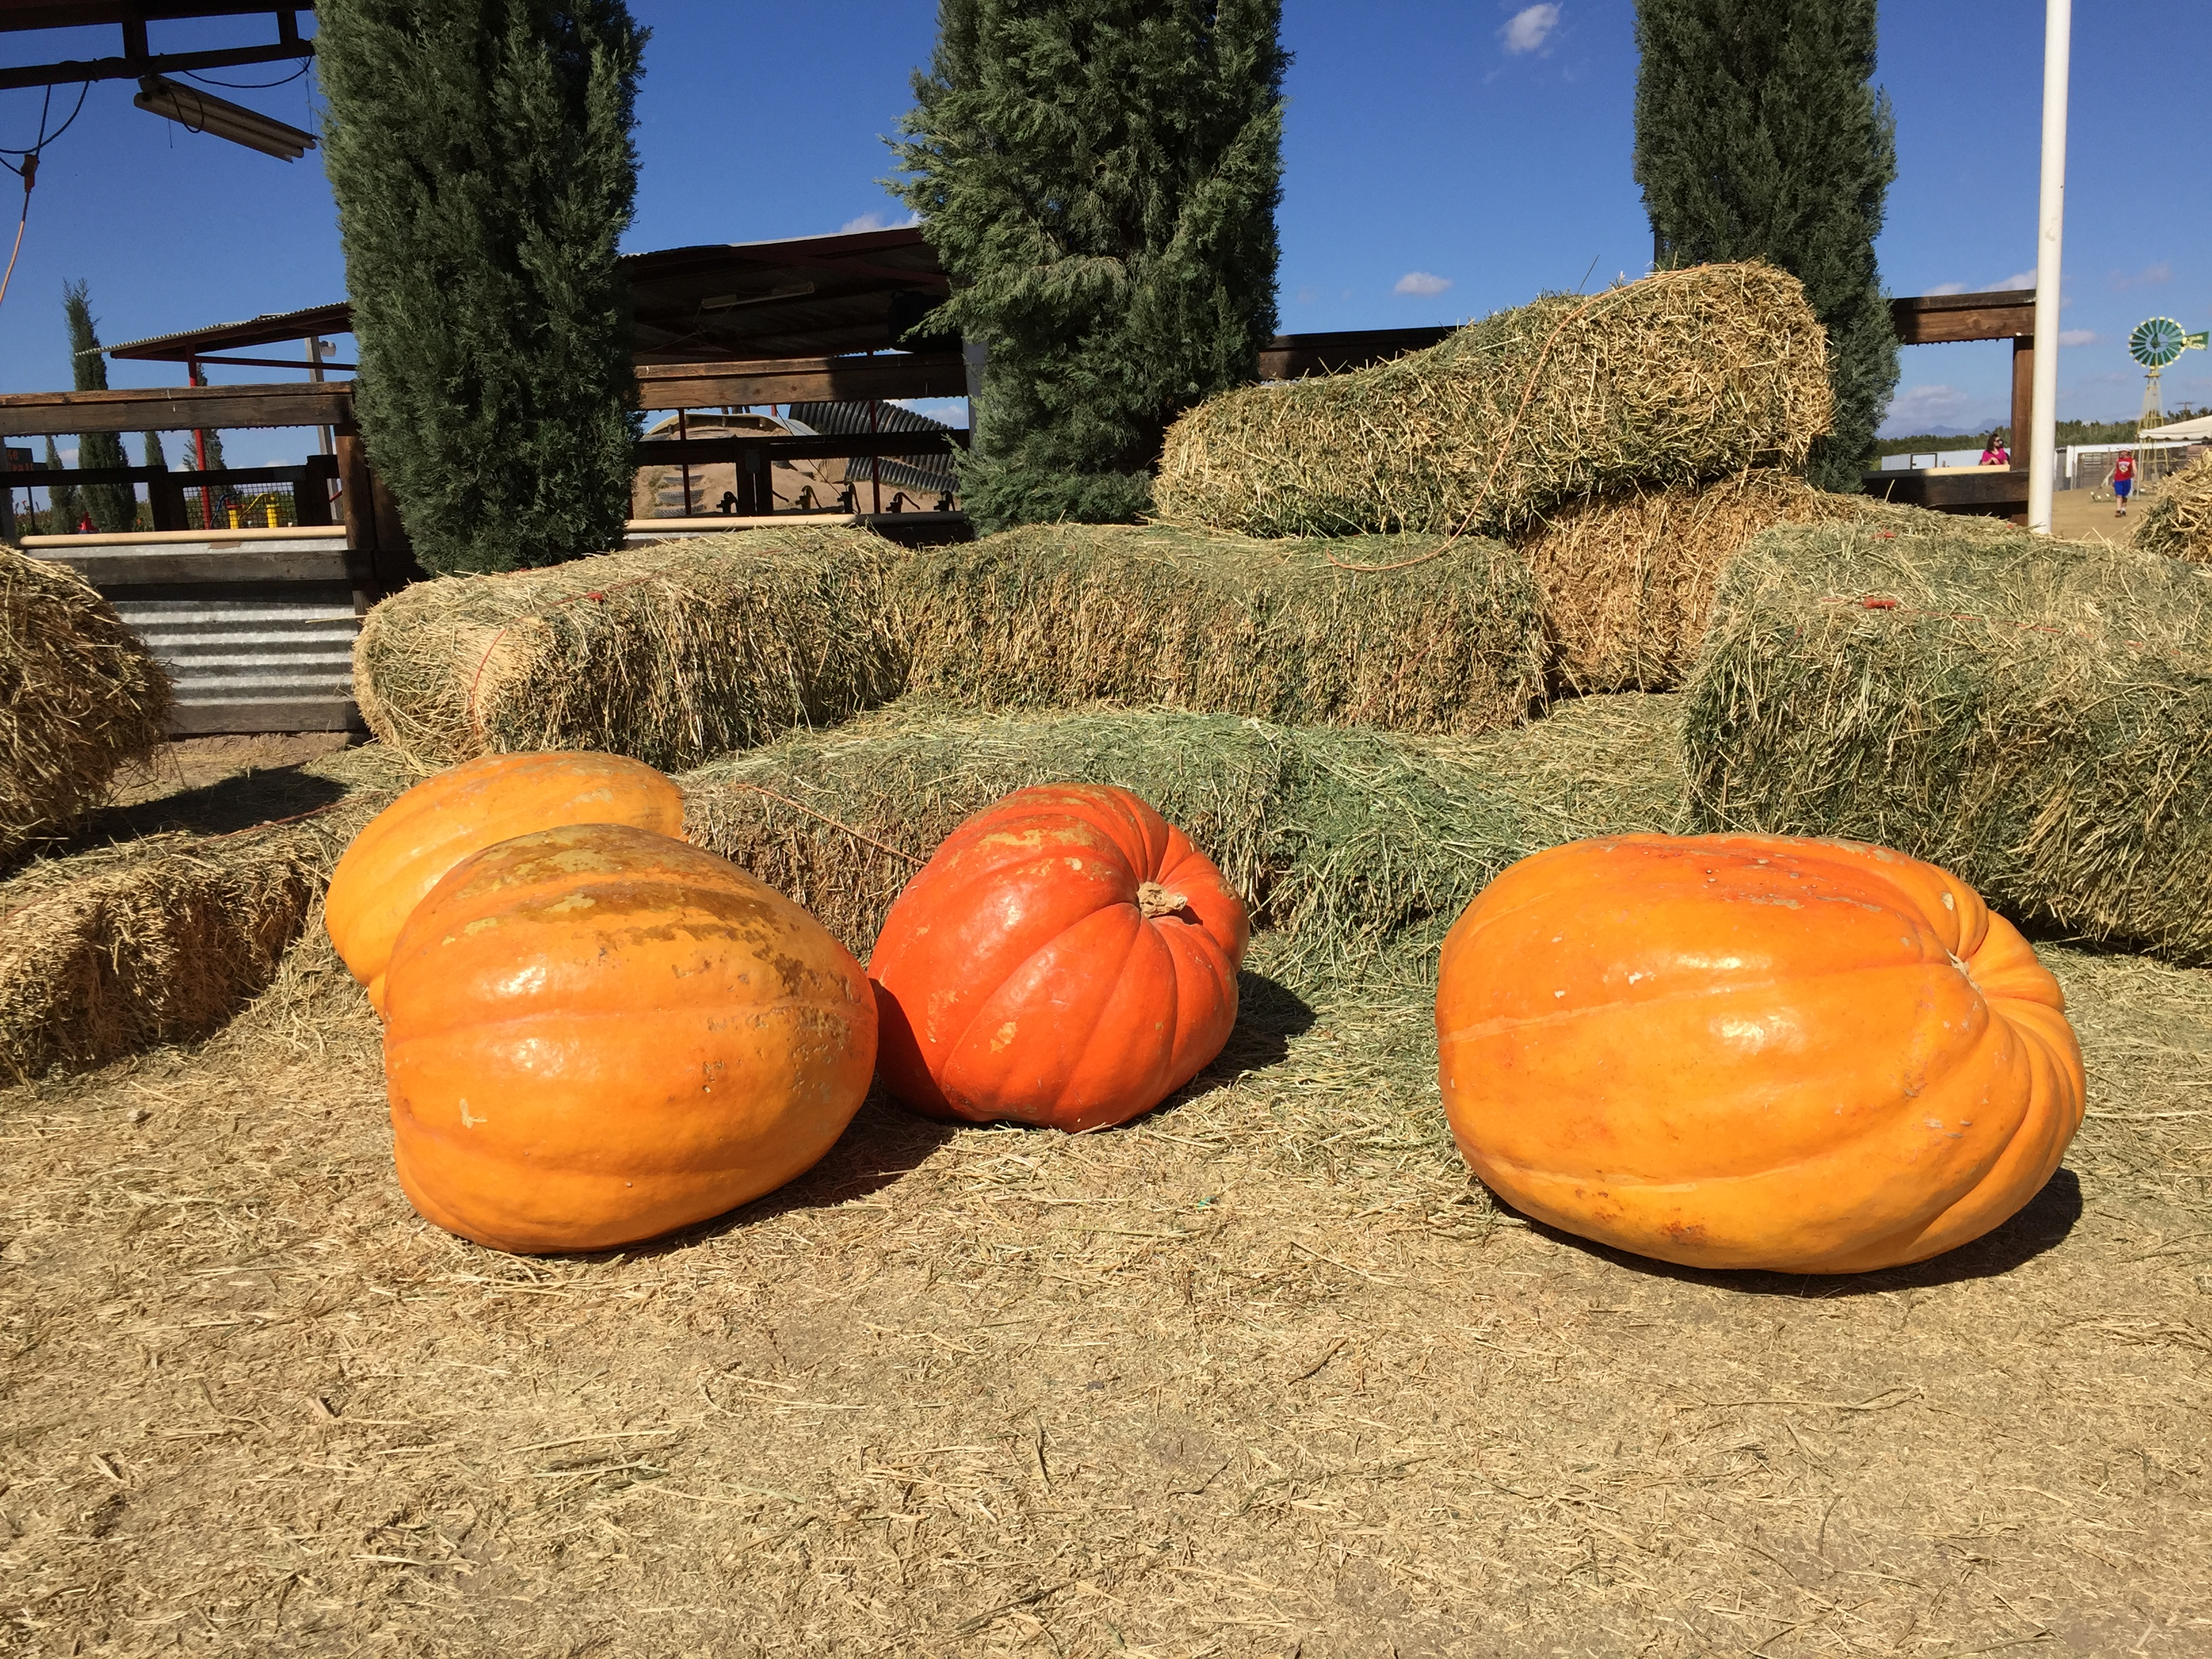 These are quite large pumpkins! Dear Son enjoyed sitting on top of them.